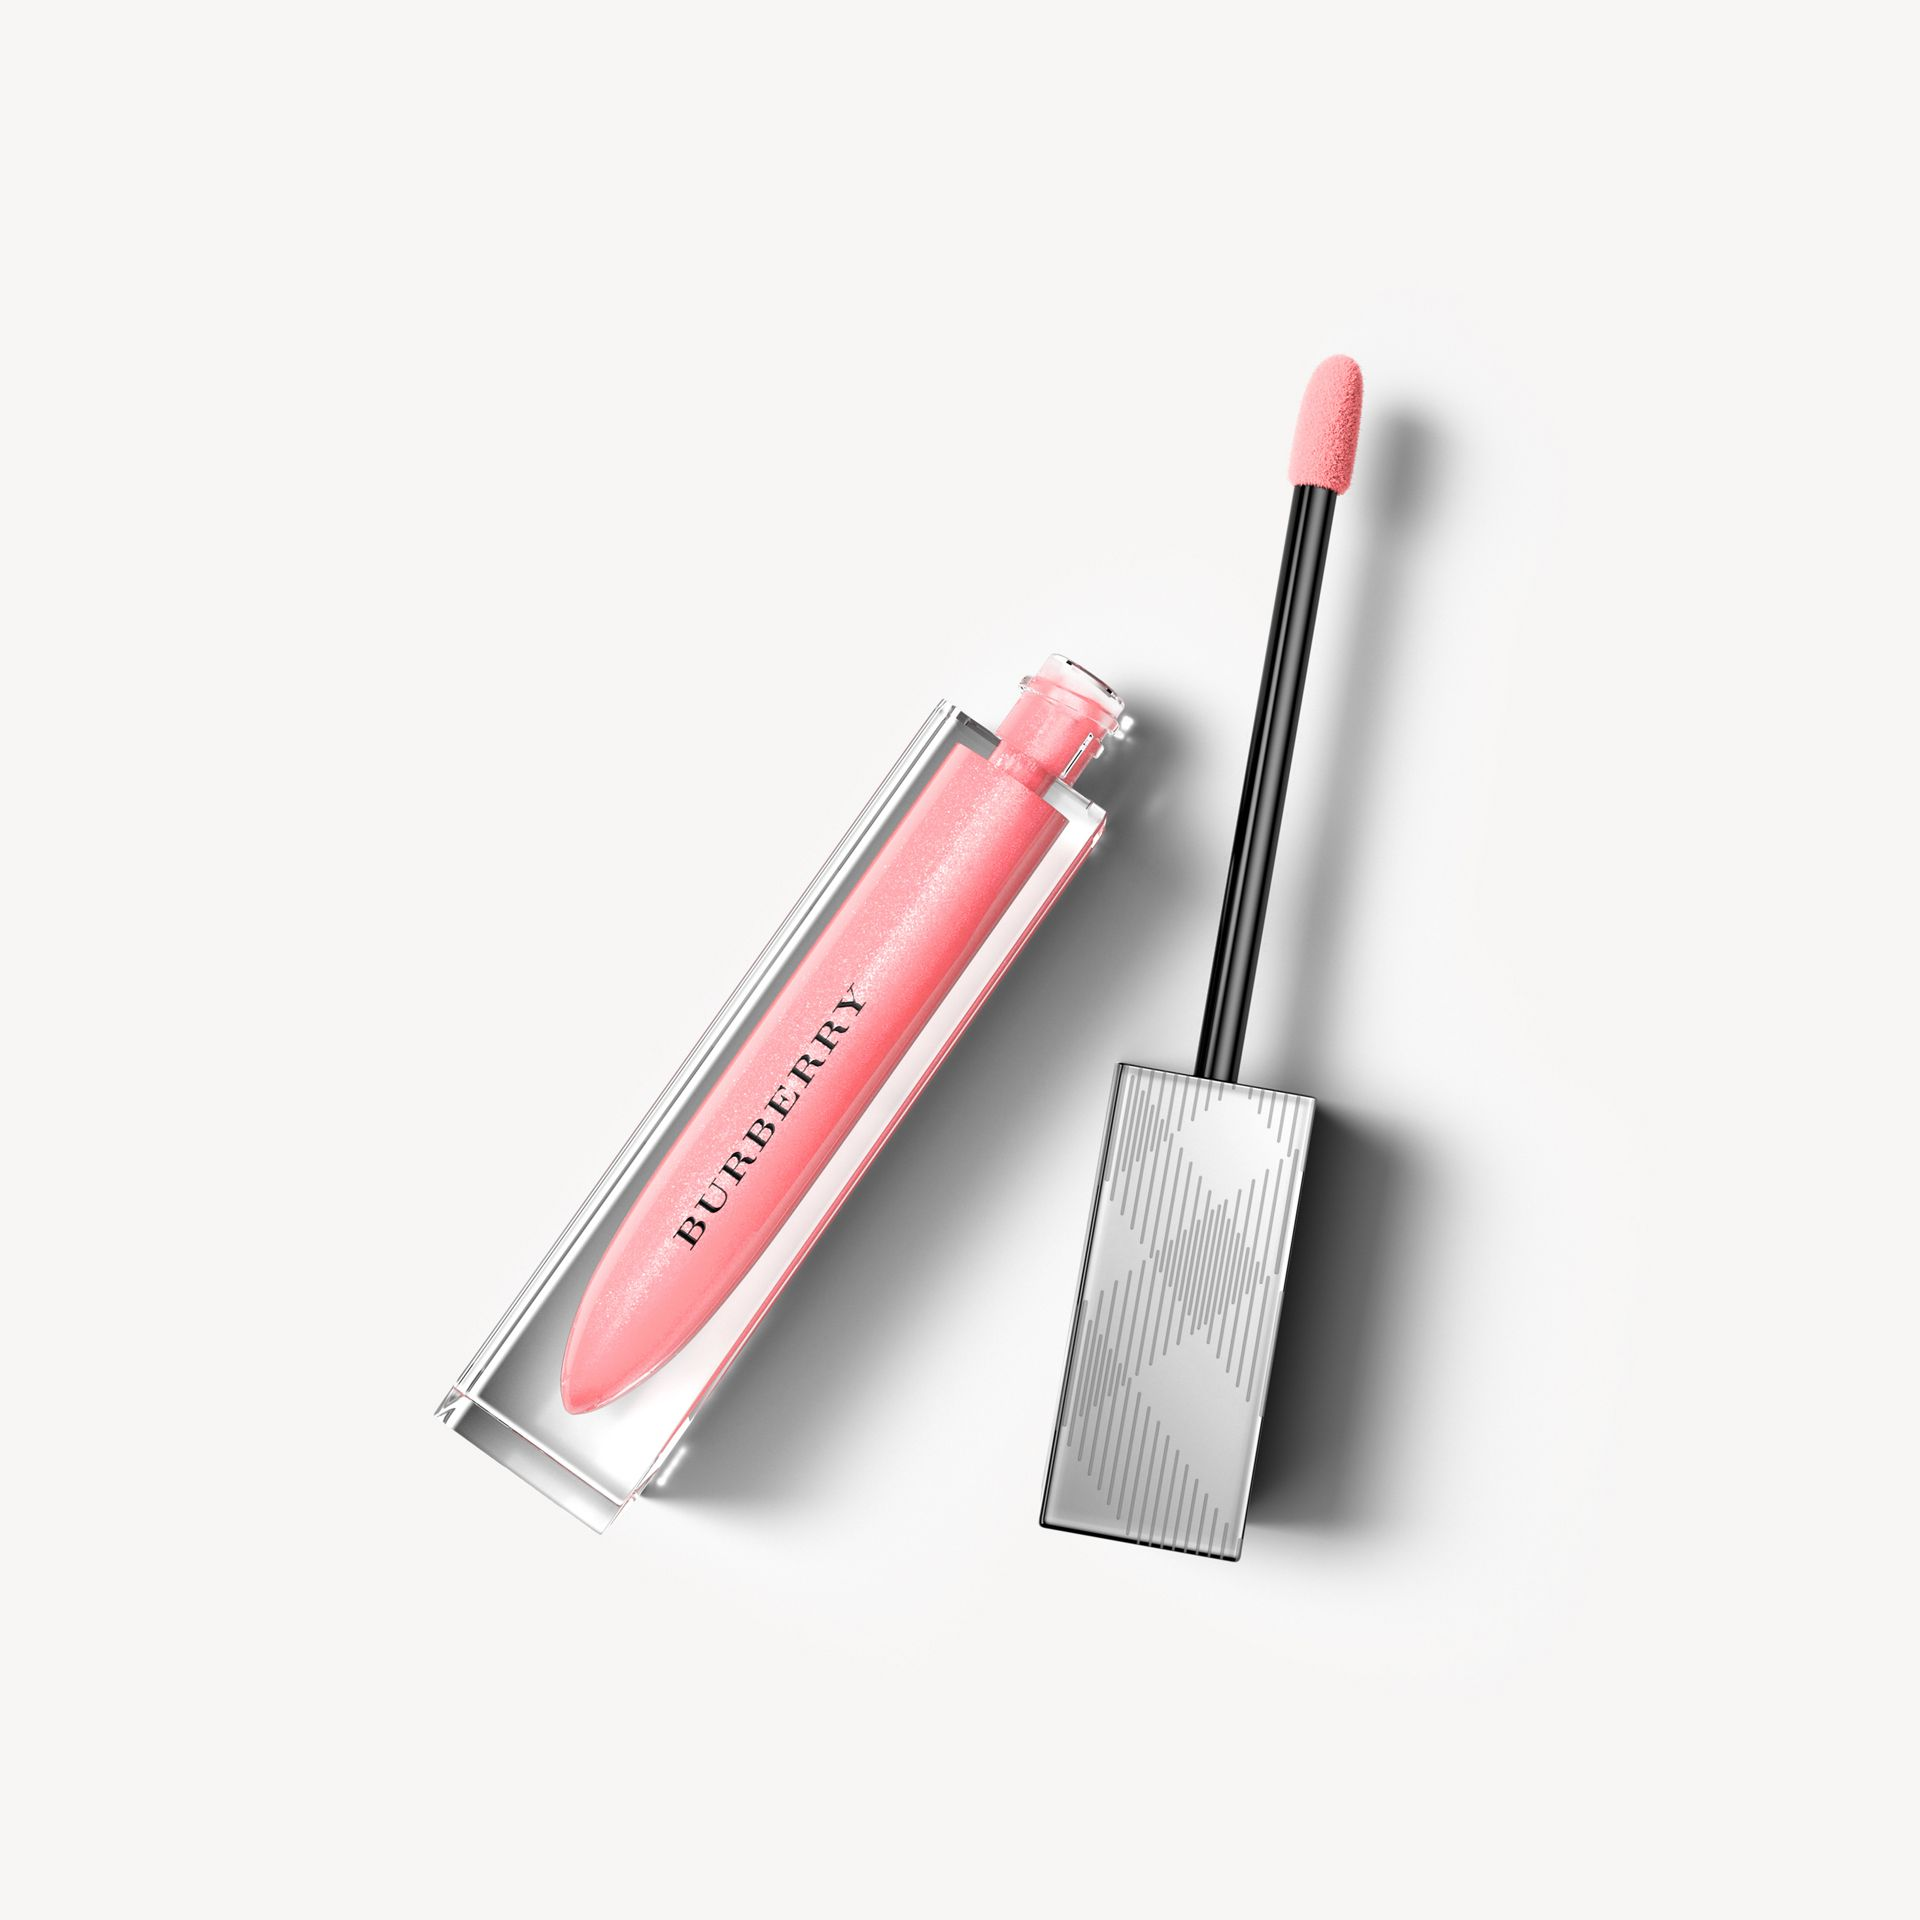 Pearl rose no.41 Burberry Kisses Gloss – Pearl Rose No.41 - Galerie-Bild 1